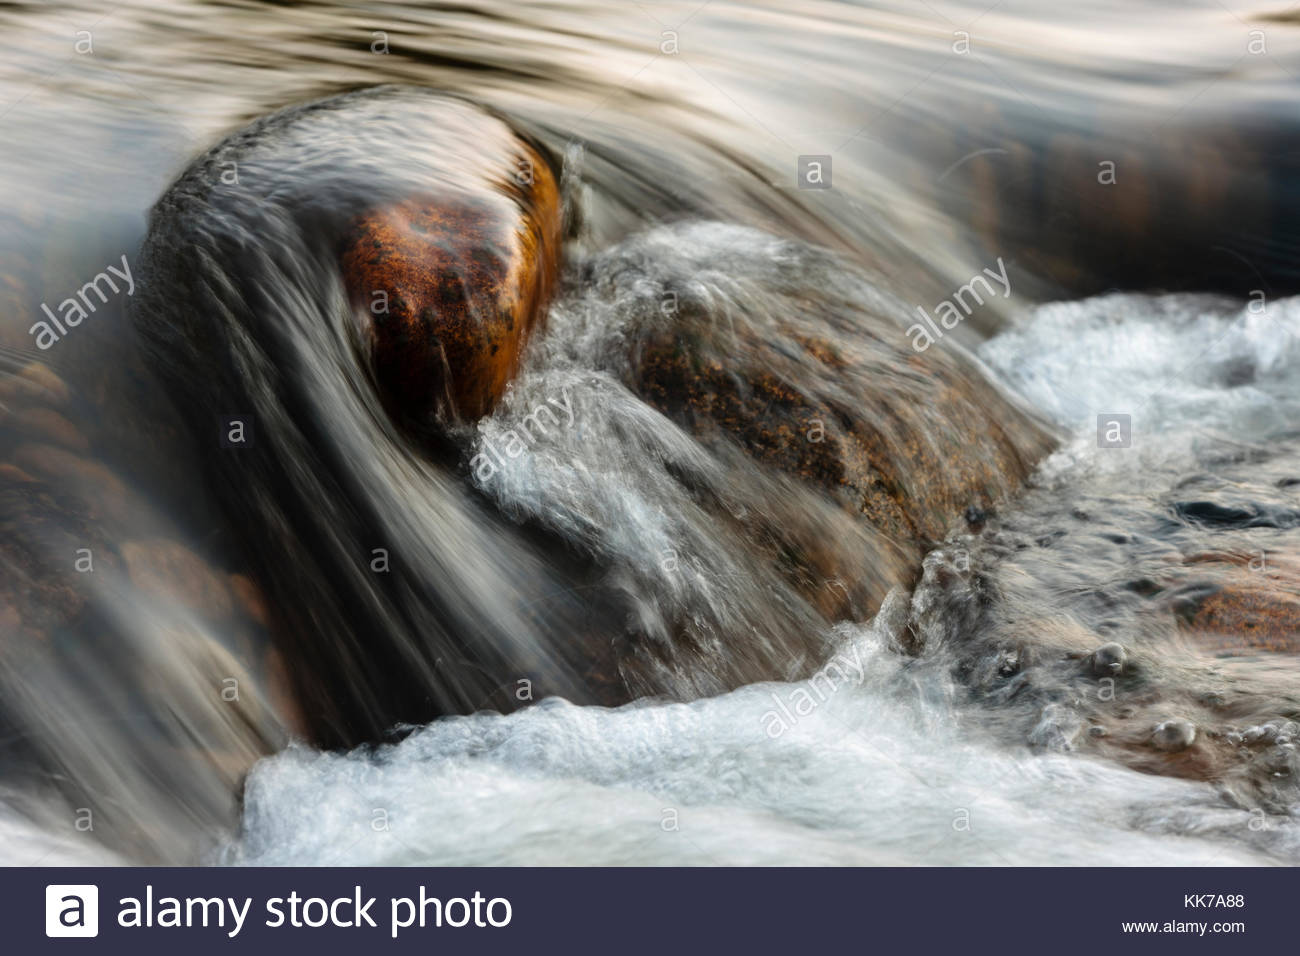 The clear water of the Big Thompson flows swiftly over the boulders in Estes Park, Colorado - Stock Image